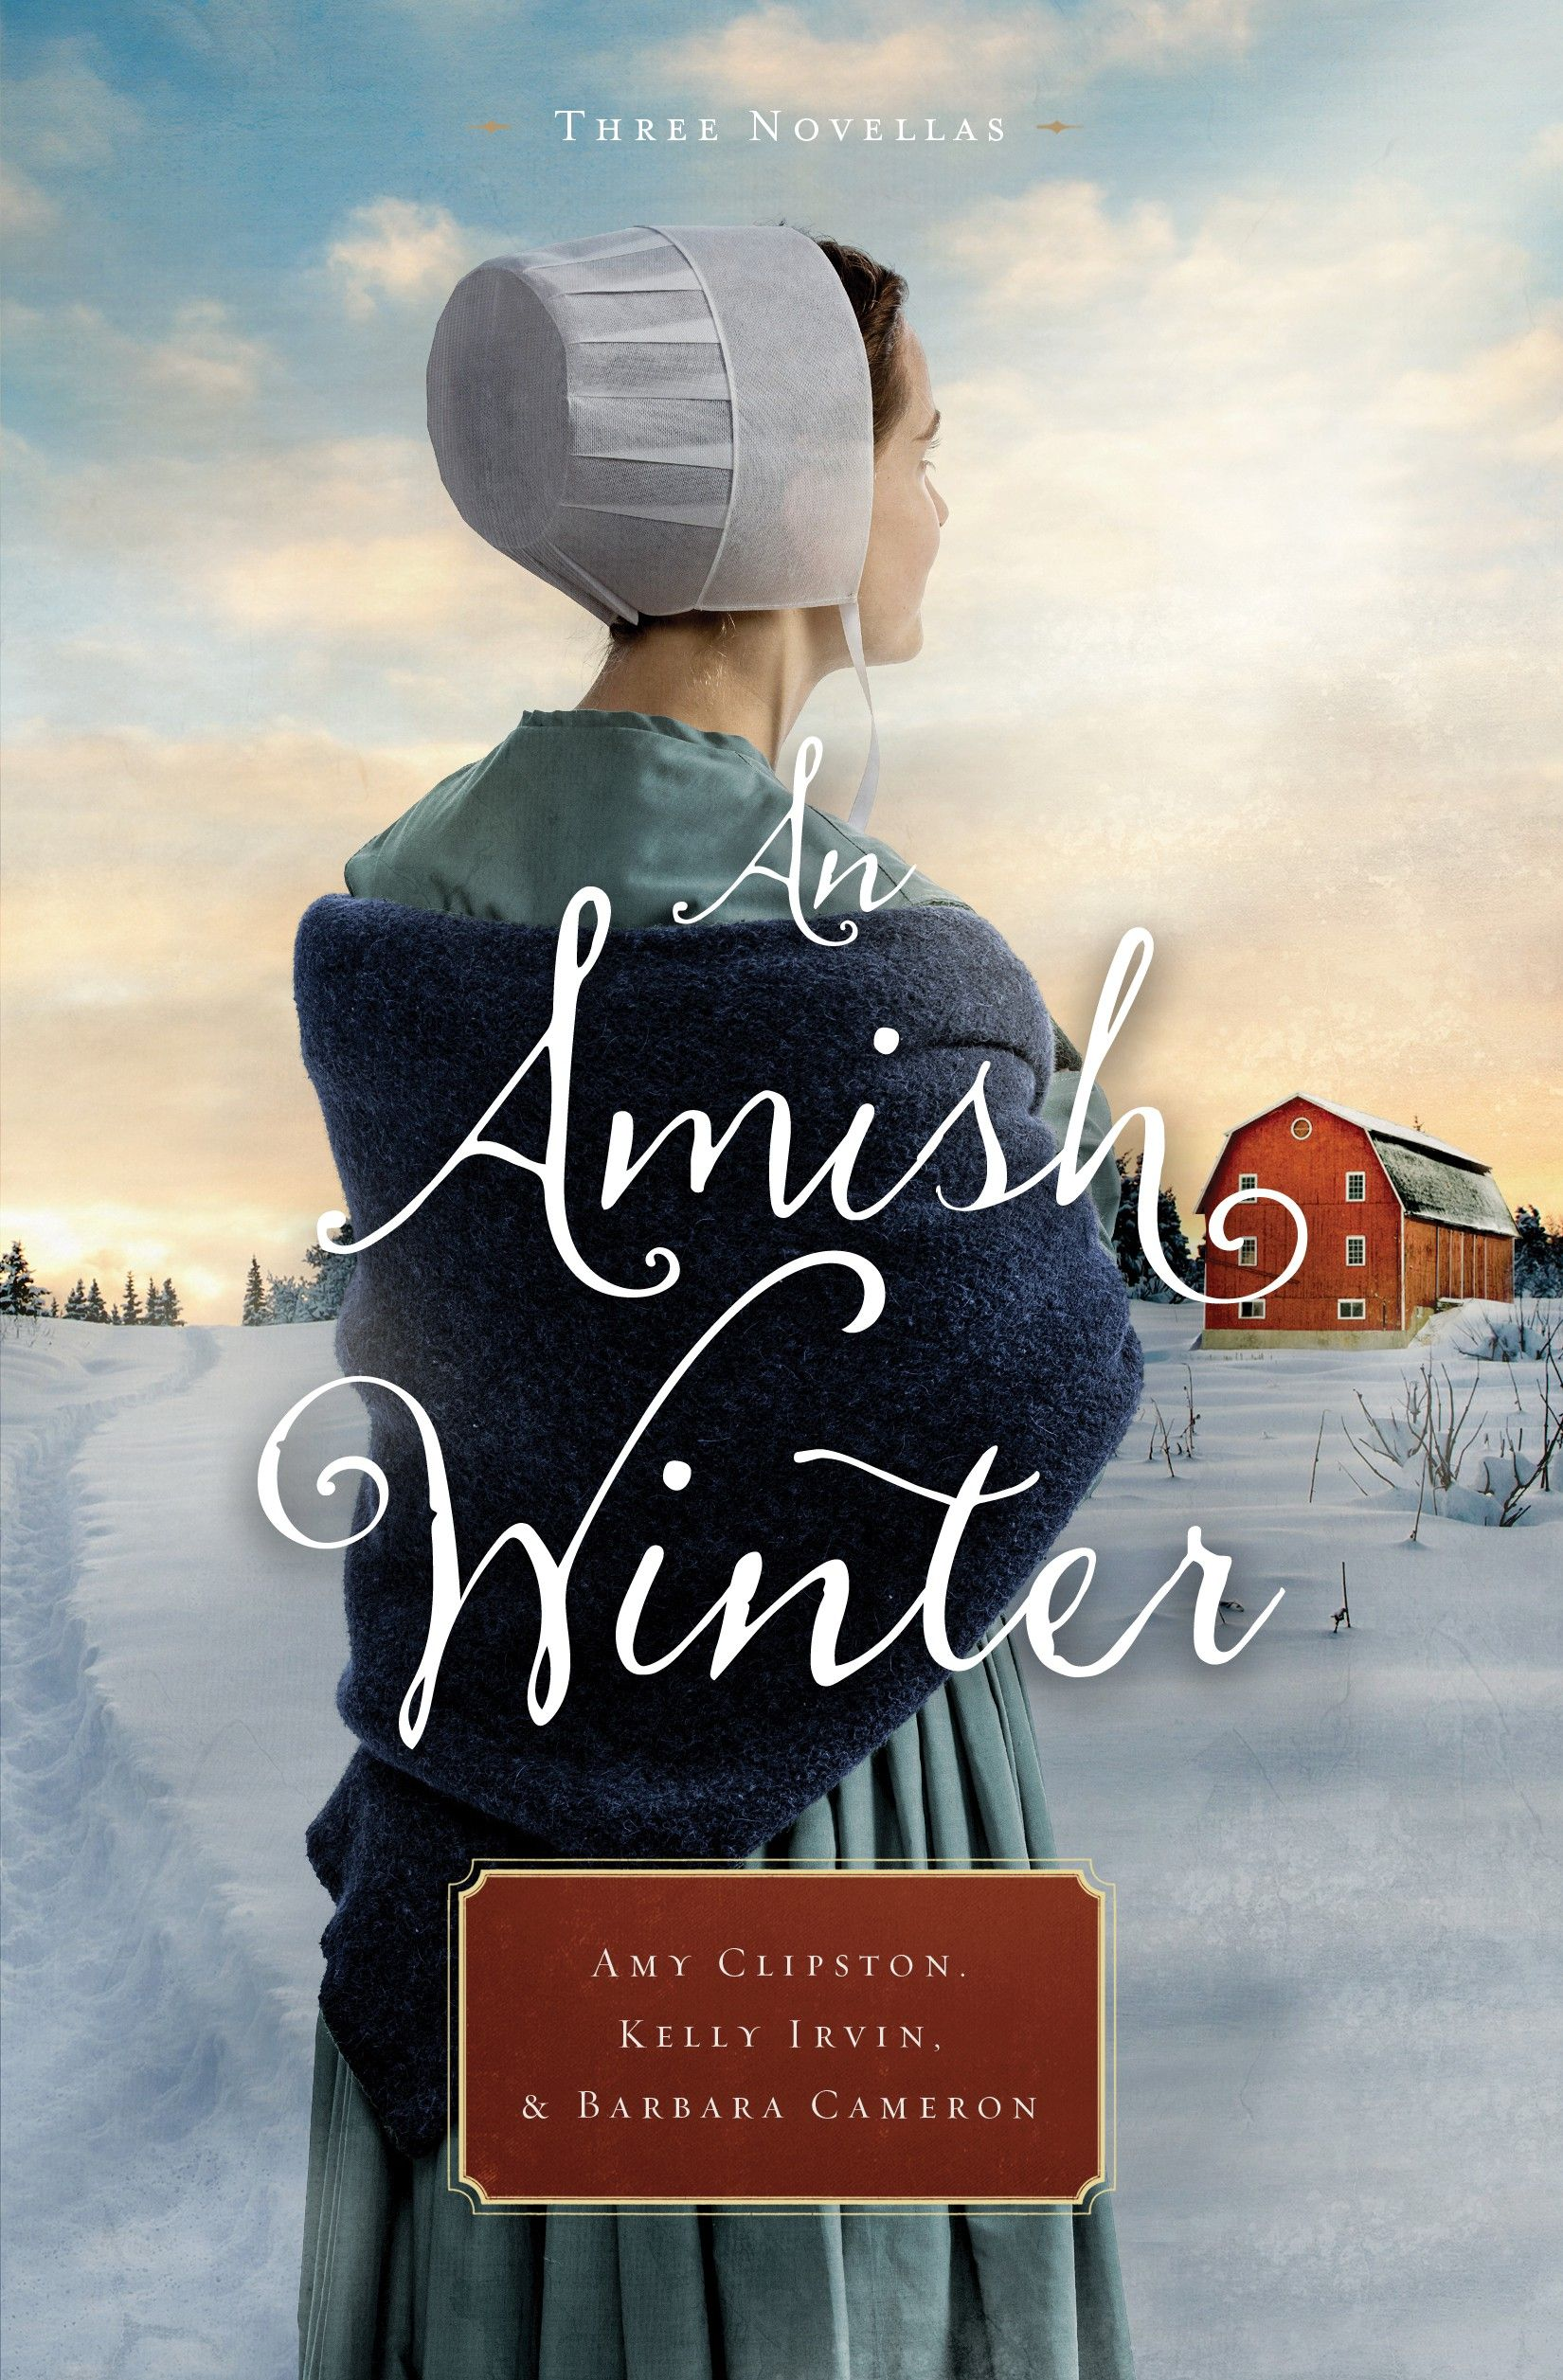 Amish Book Titles Sarah S Country Kitchen An Amish Winter By Amy Clipston Amish Books Holiday Romance Books Amish Fiction